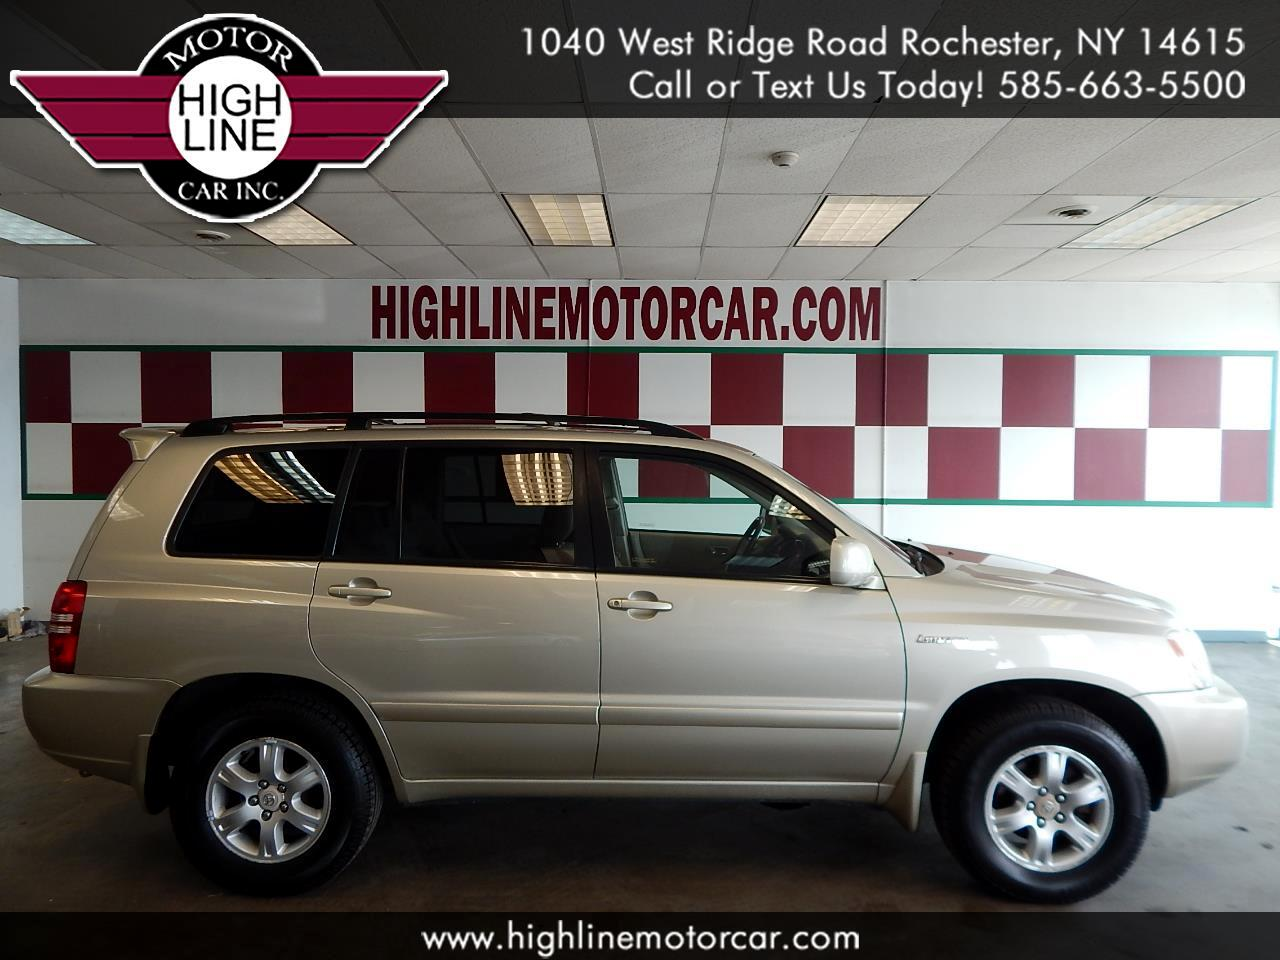 2003 Toyota Highlander 4dr V6 4WD Limited (Natl)